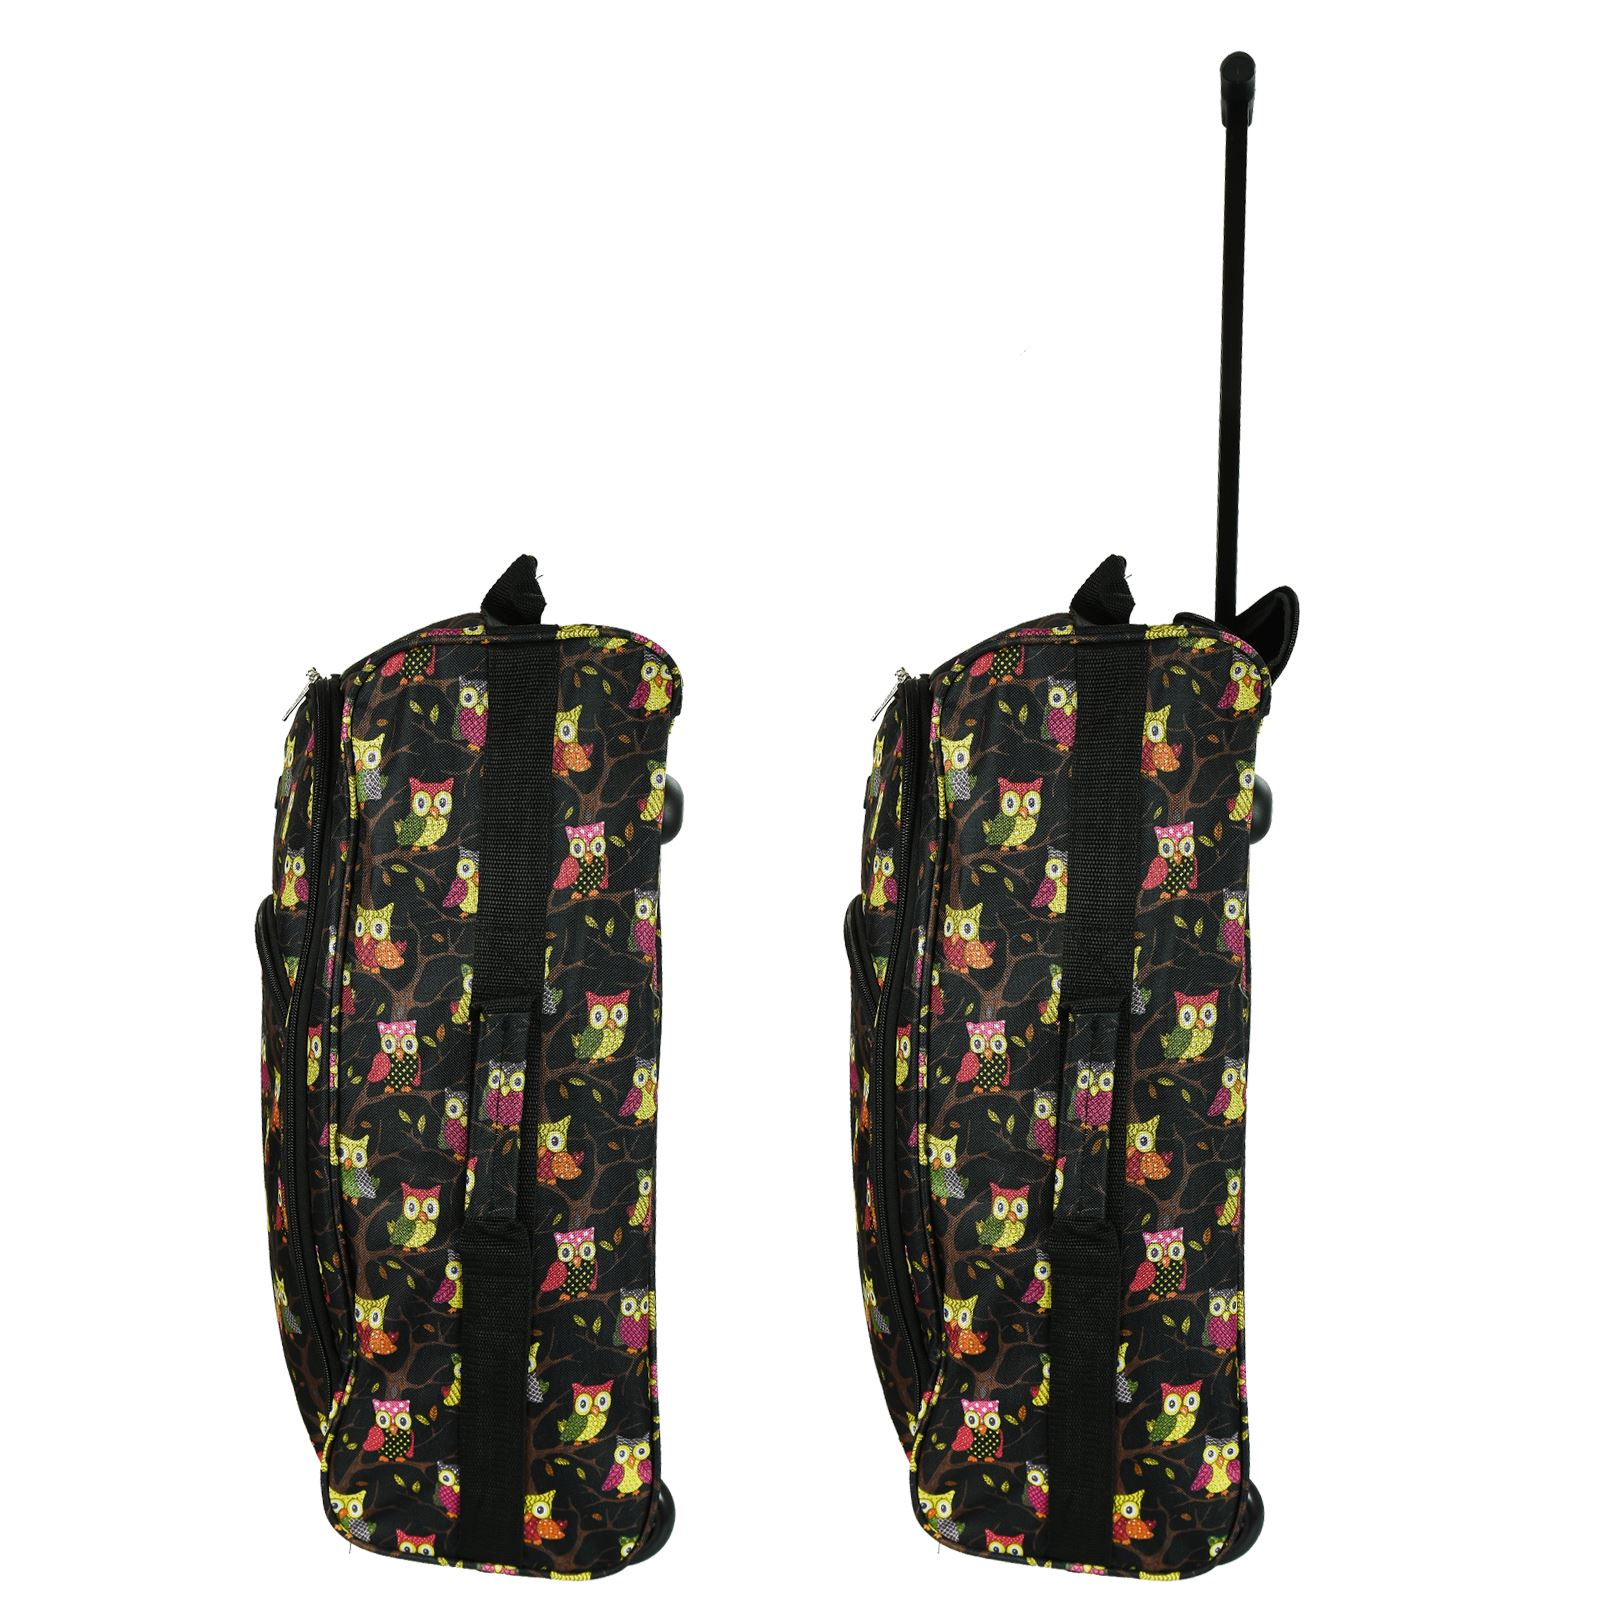 Cabin-Hand-Luggage-Trolley-Bag-Small-Travel-Flight-Suitcase-Holdall-Wheeled thumbnail 10